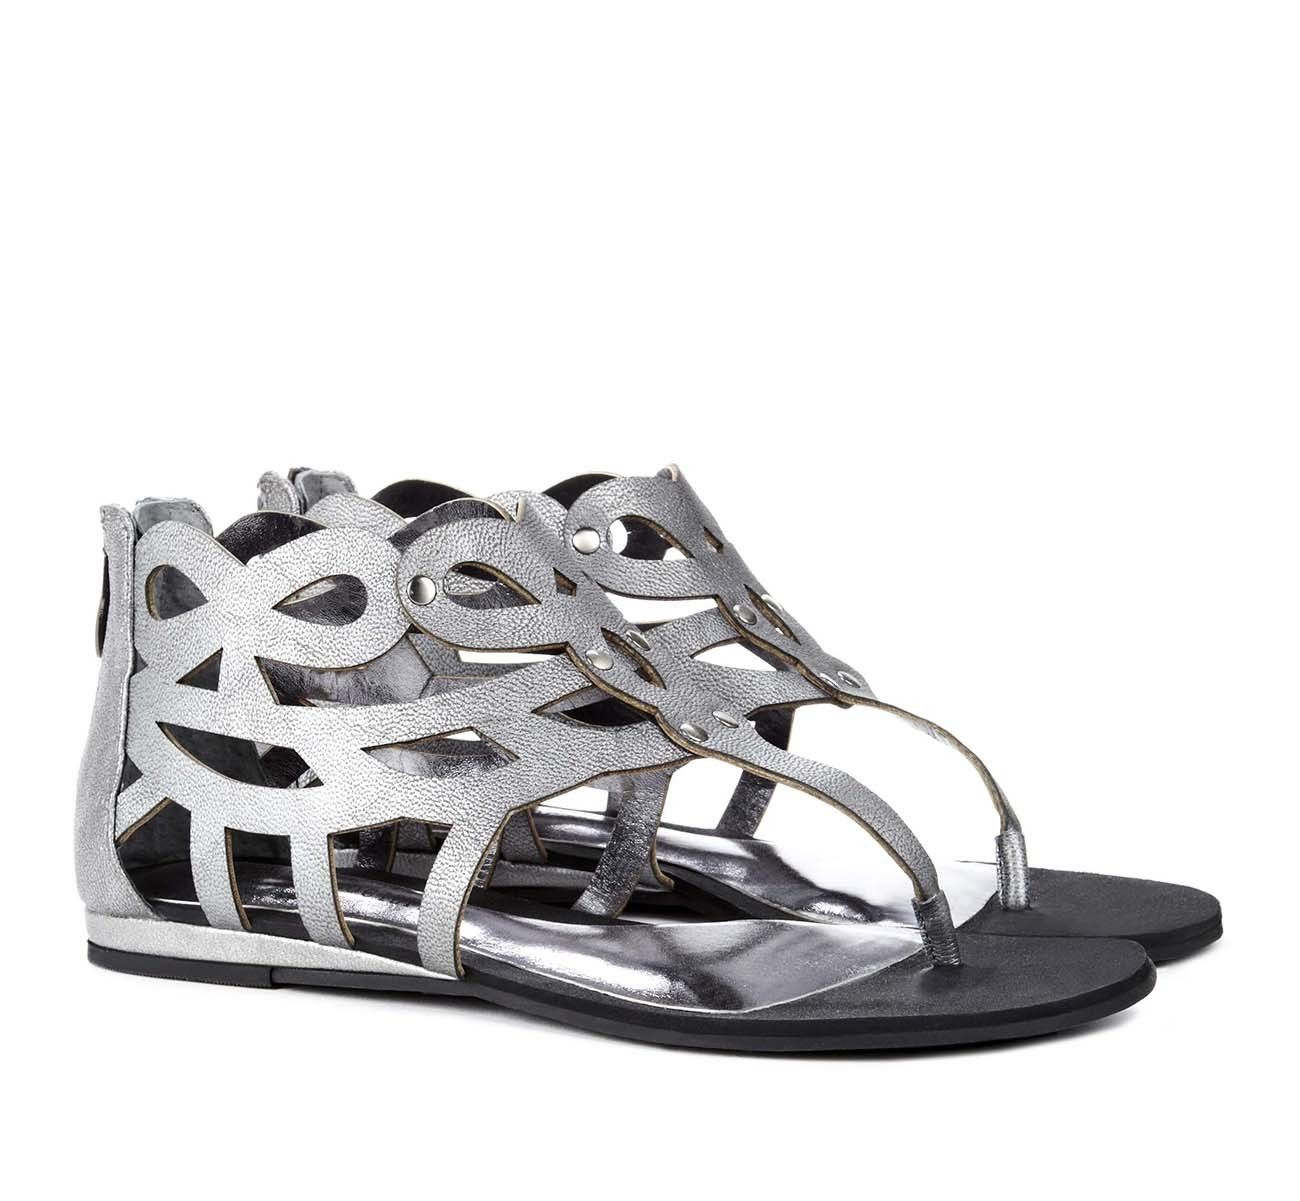 2f0d8b88a06 Sole Society - Women s Shoes at Surprisingly Affordable Prices